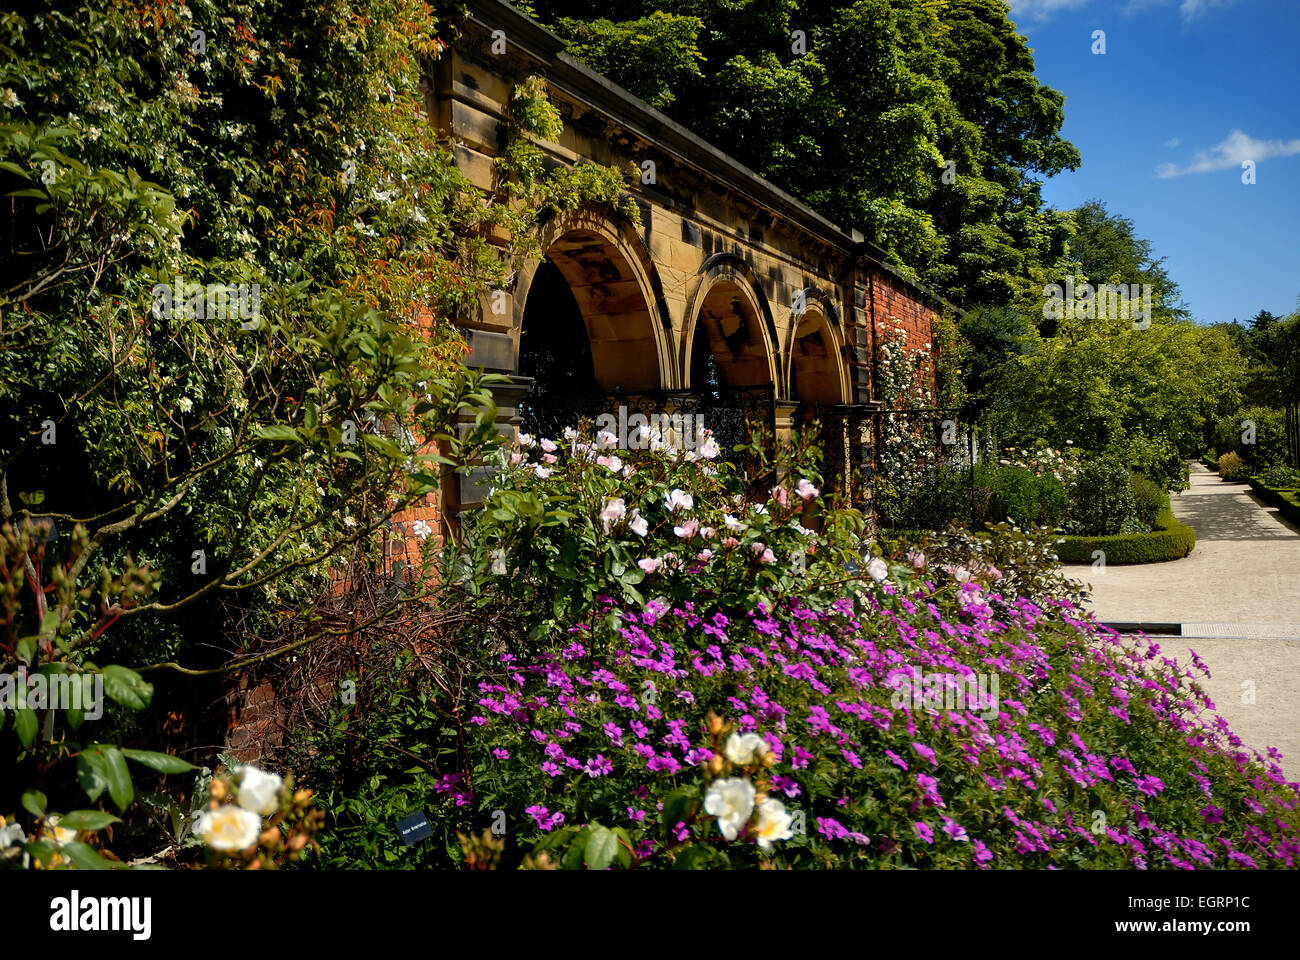 United Kingdom The Alnwick Garden Beauty Bloom Blooming Blossom ...